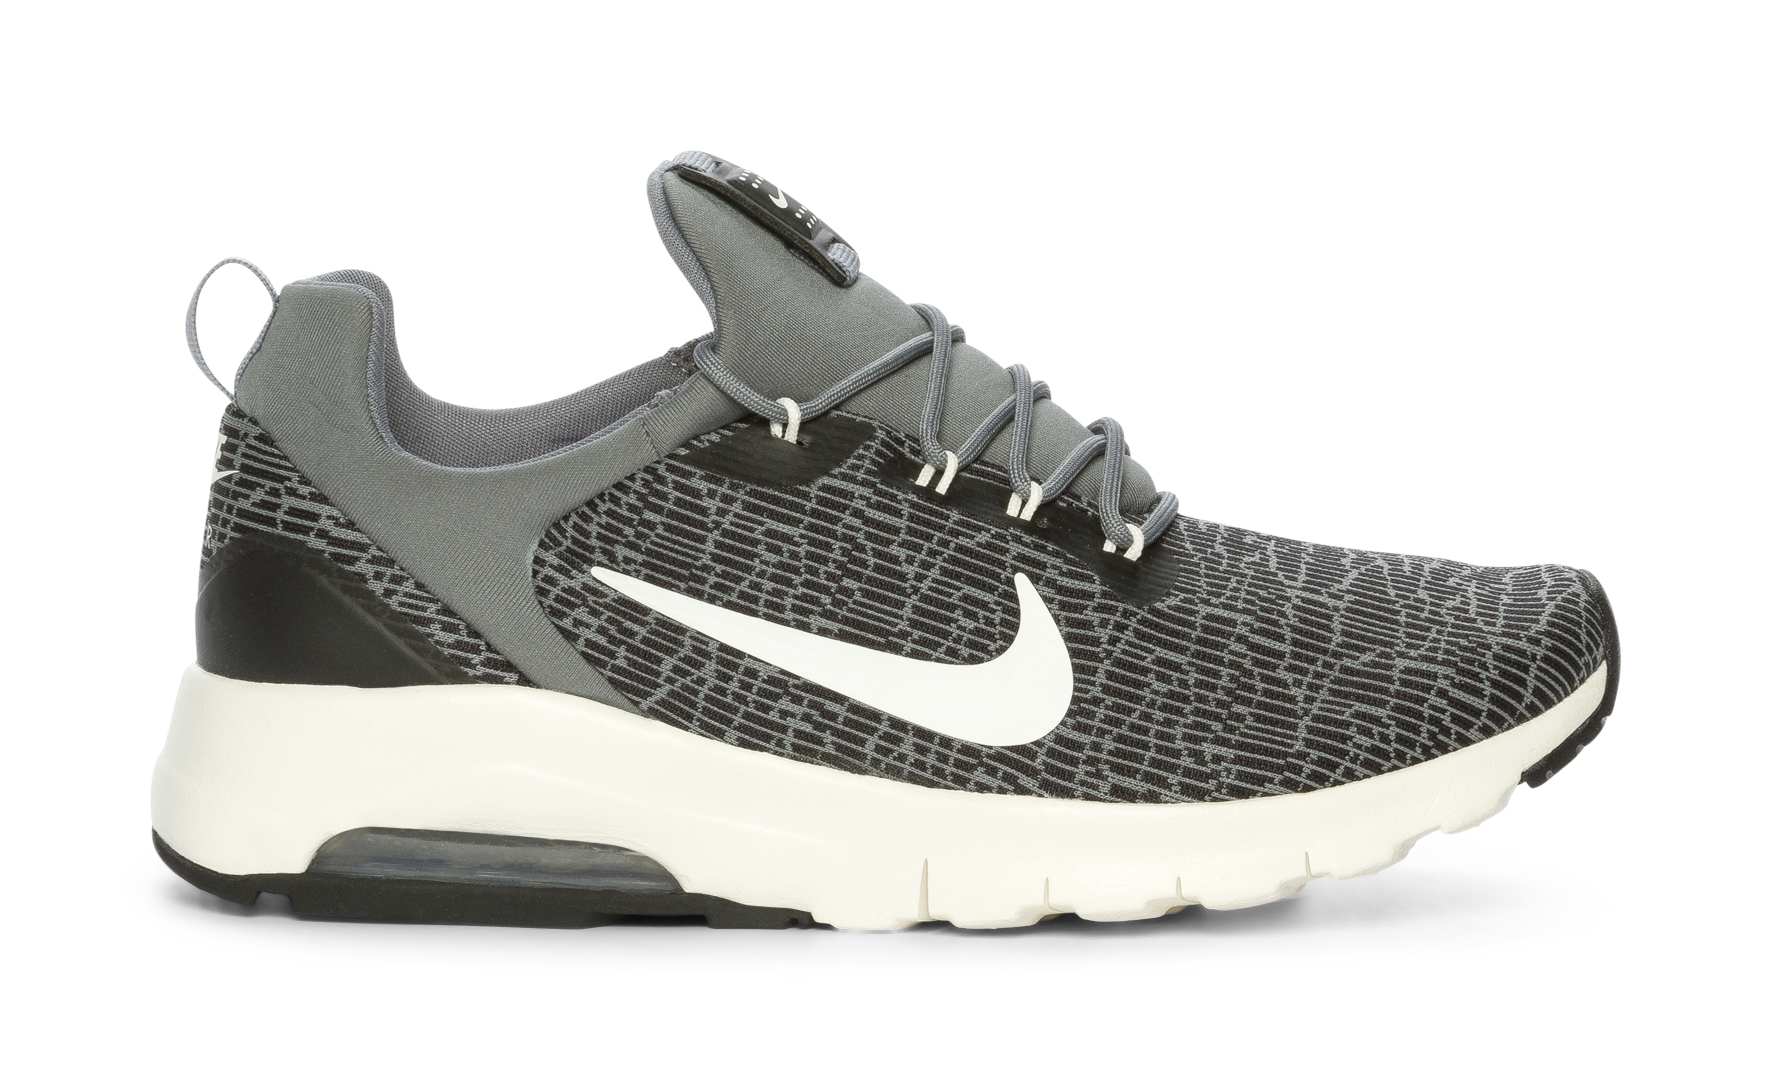 new style a142c a3a60 Nike Air Max Motion Racer - Svarta 309800 feetfirst.se